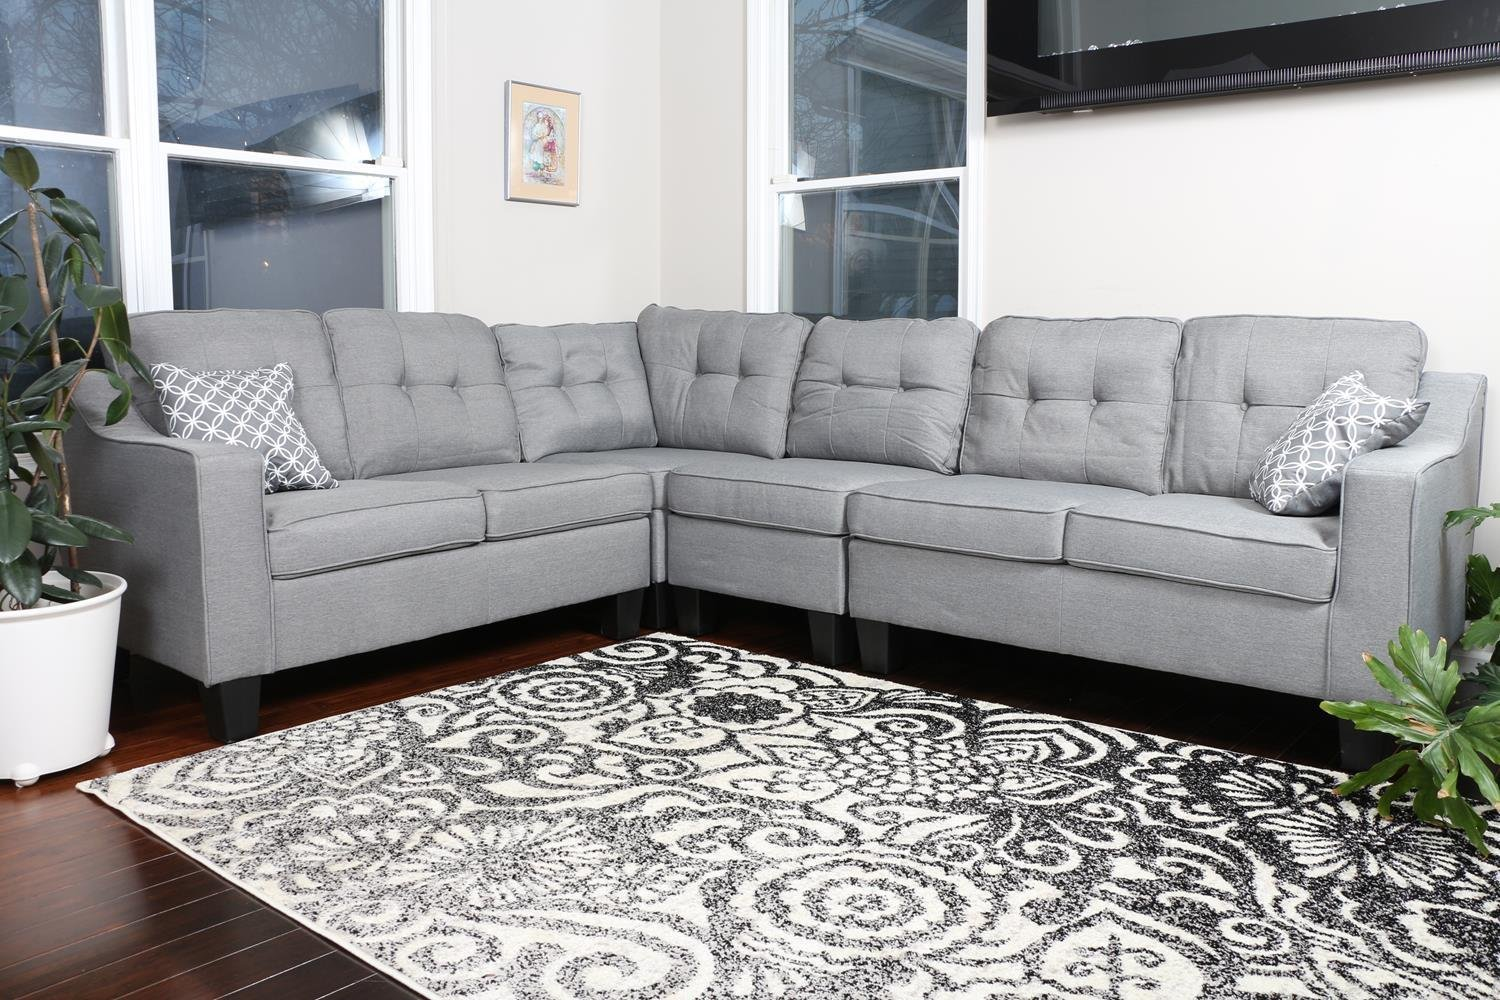 Large Light Grey Quality Sectional 106″ X 825″ X 34. Modern Dining Room Lighting. Home Decoration Stores. Gray Living Room Furniture. Decorative Outdoor Flags. Ideas For Living Room Decoration Modern. Work Office Decor. Classroom Decorations For Teachers. Yard And Garden Decor